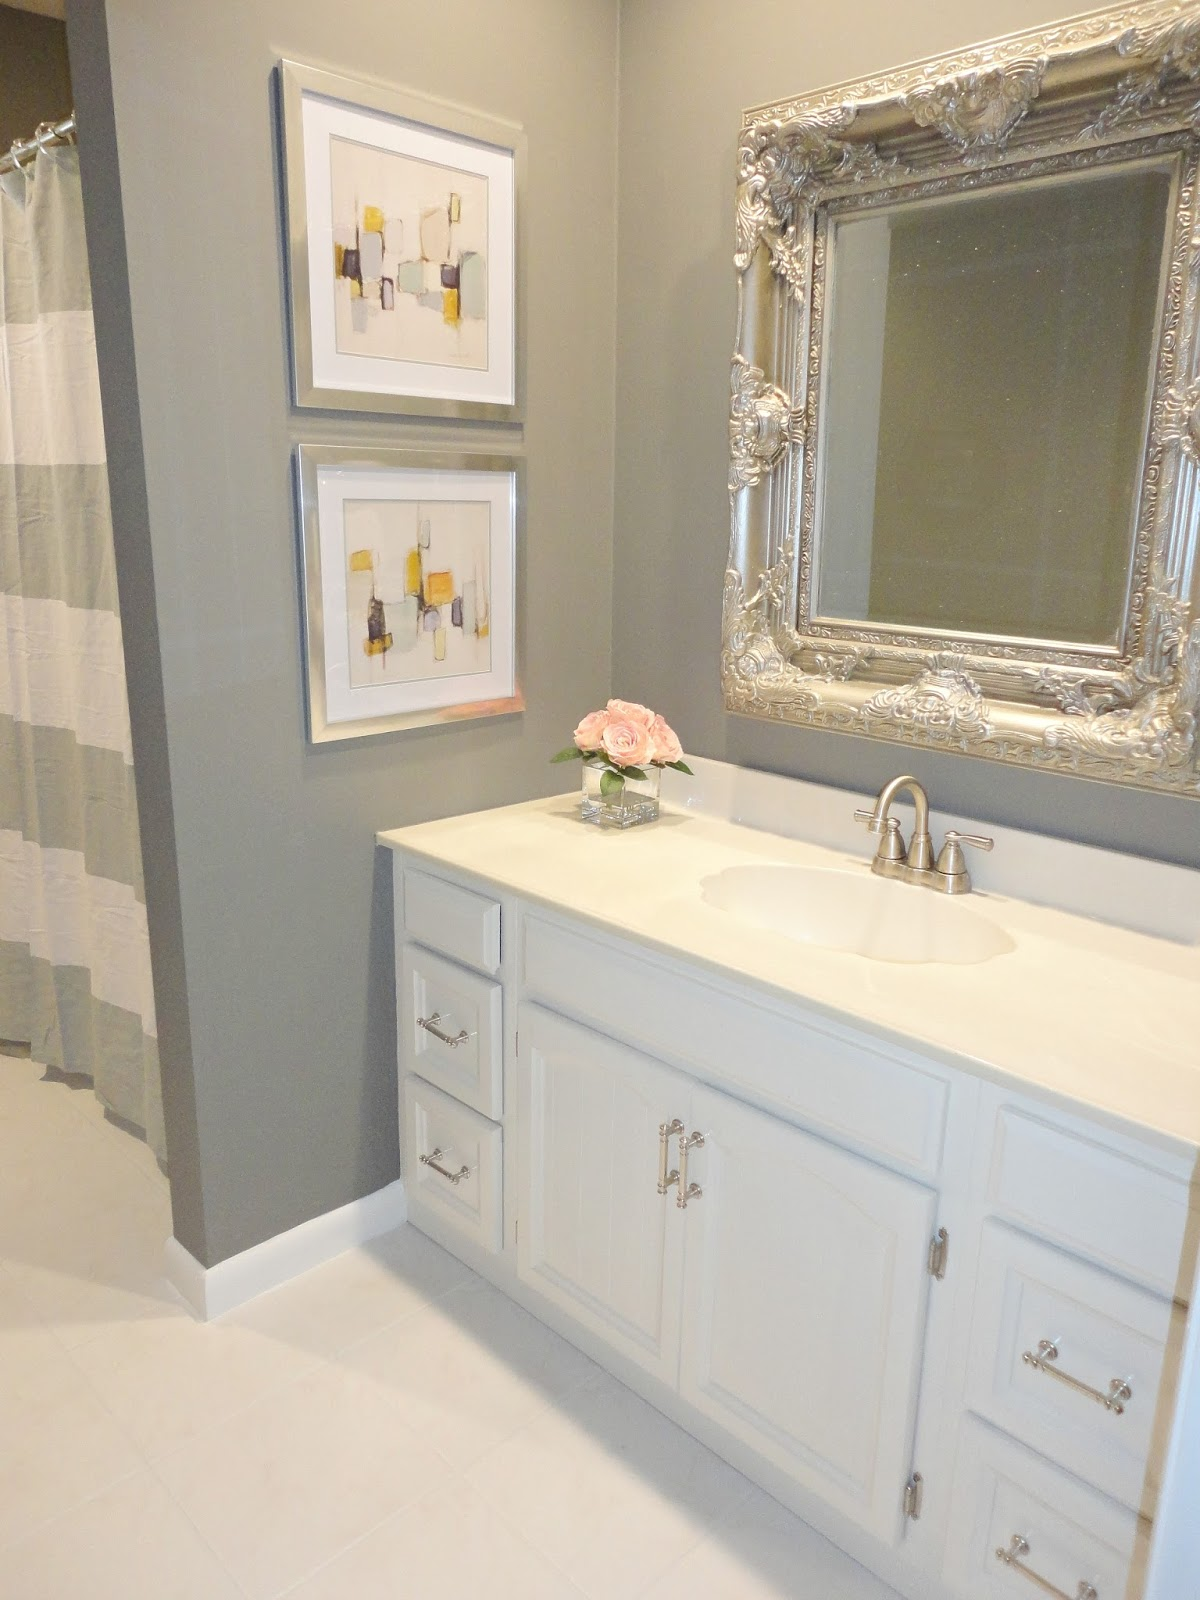 Diy Bathroom Remodel Photos livelovediy: diy bathroom remodel on a budget